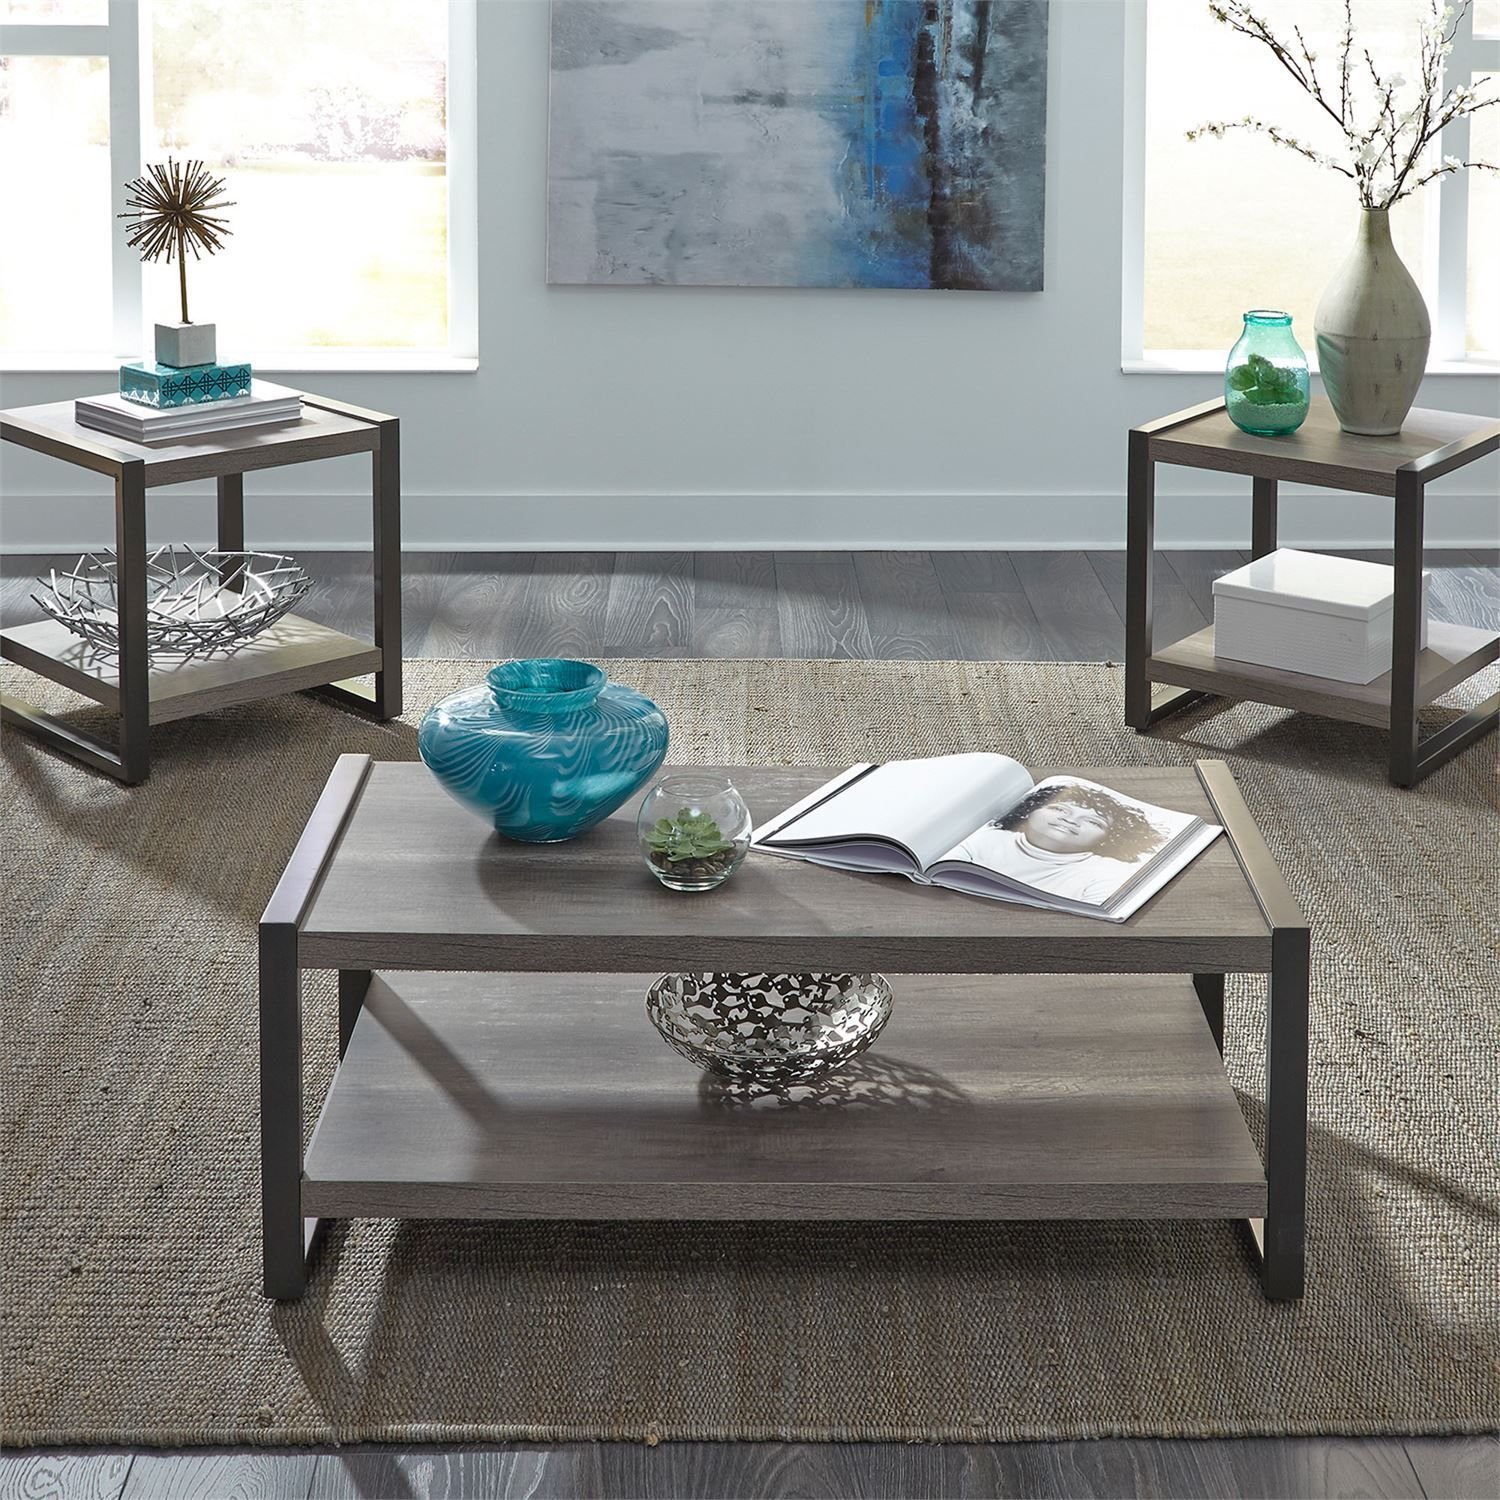 Tanners Creek 3 Pack In 2020 3 Piece Coffee Table Set Coffee Table Liberty Furniture [ 1500 x 1500 Pixel ]